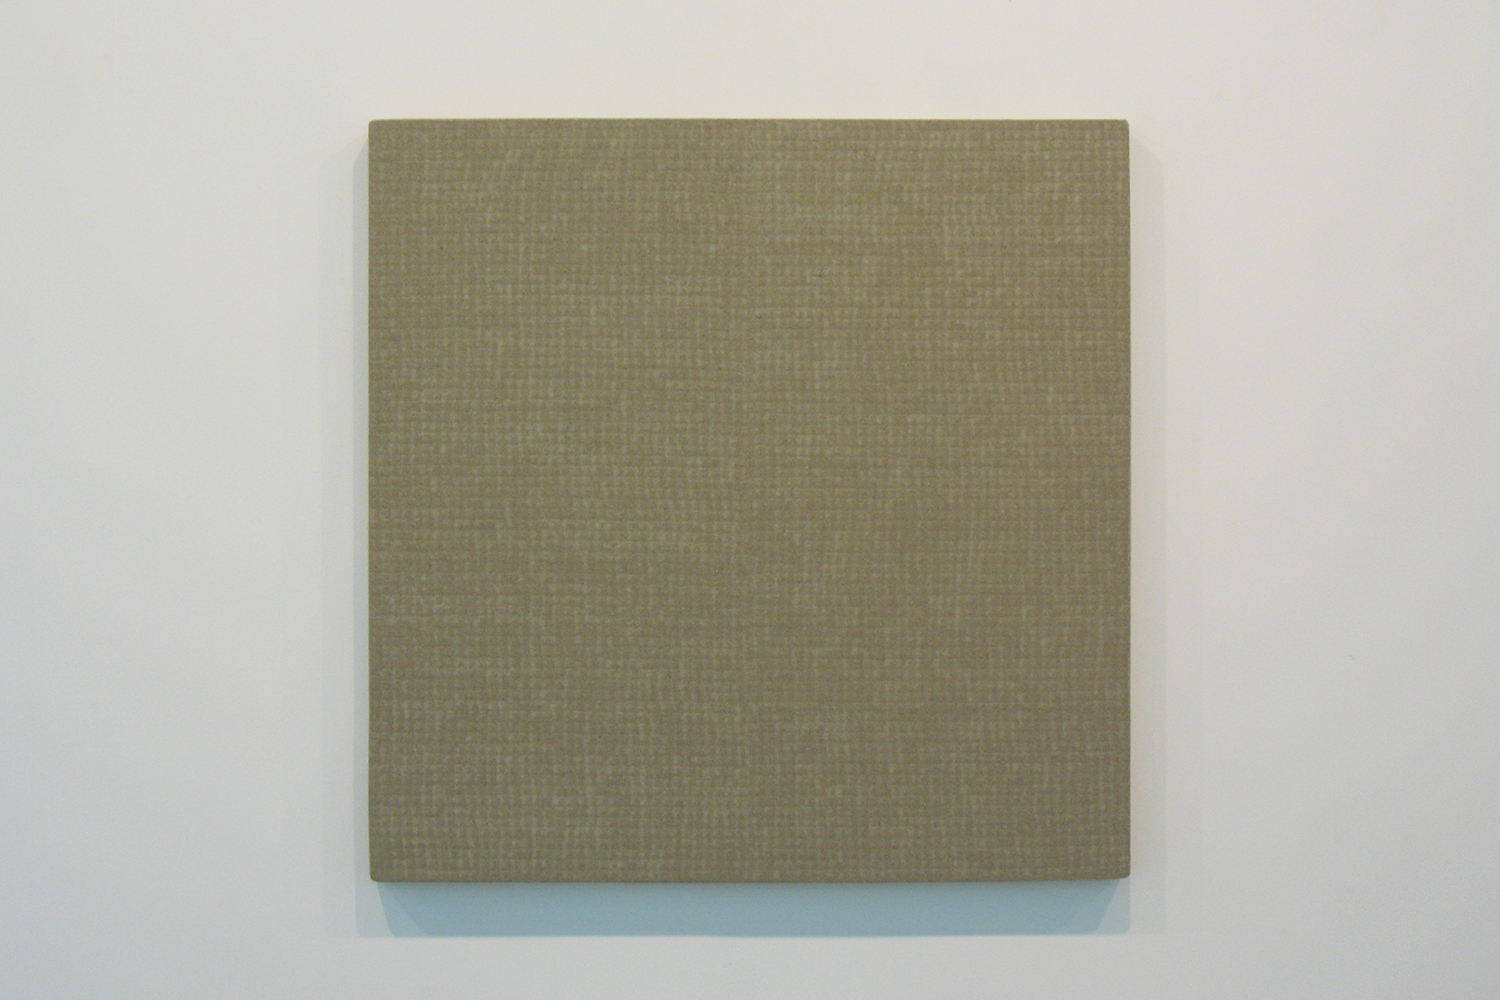 Hemp-square 09-02|Acylic on canvas|72.5 x 72.5 cm|2009